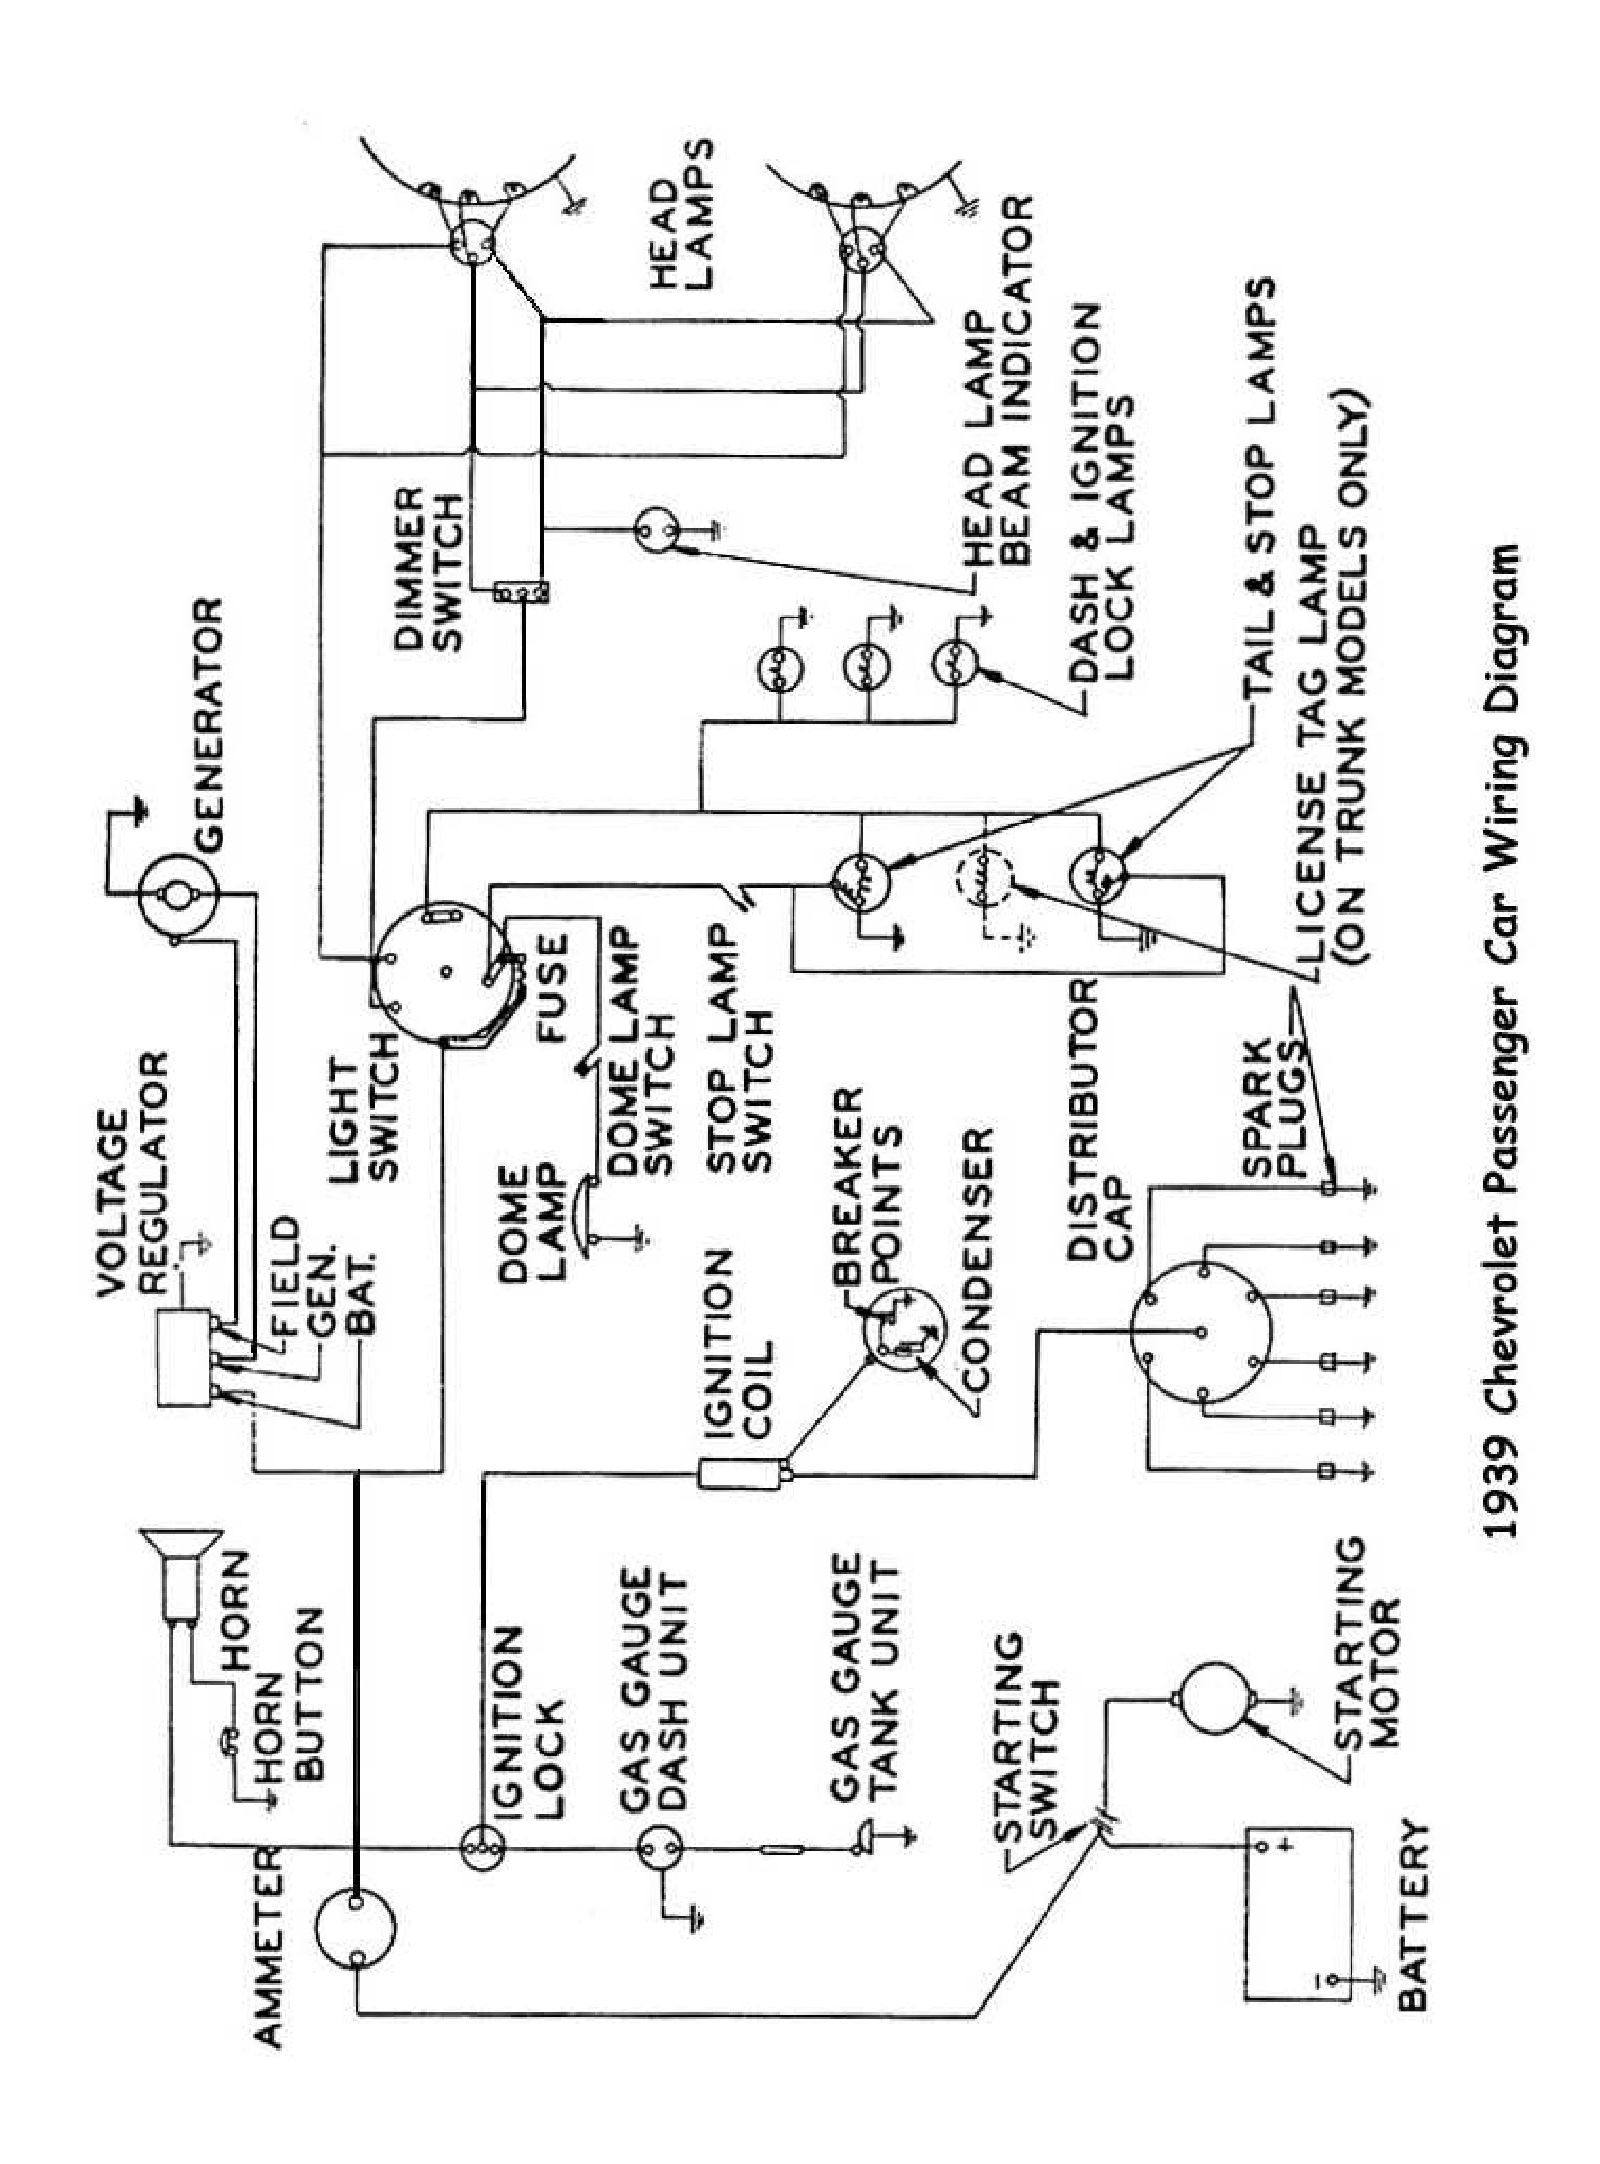 Wiring Diagram For Kmise Pickups To Switch